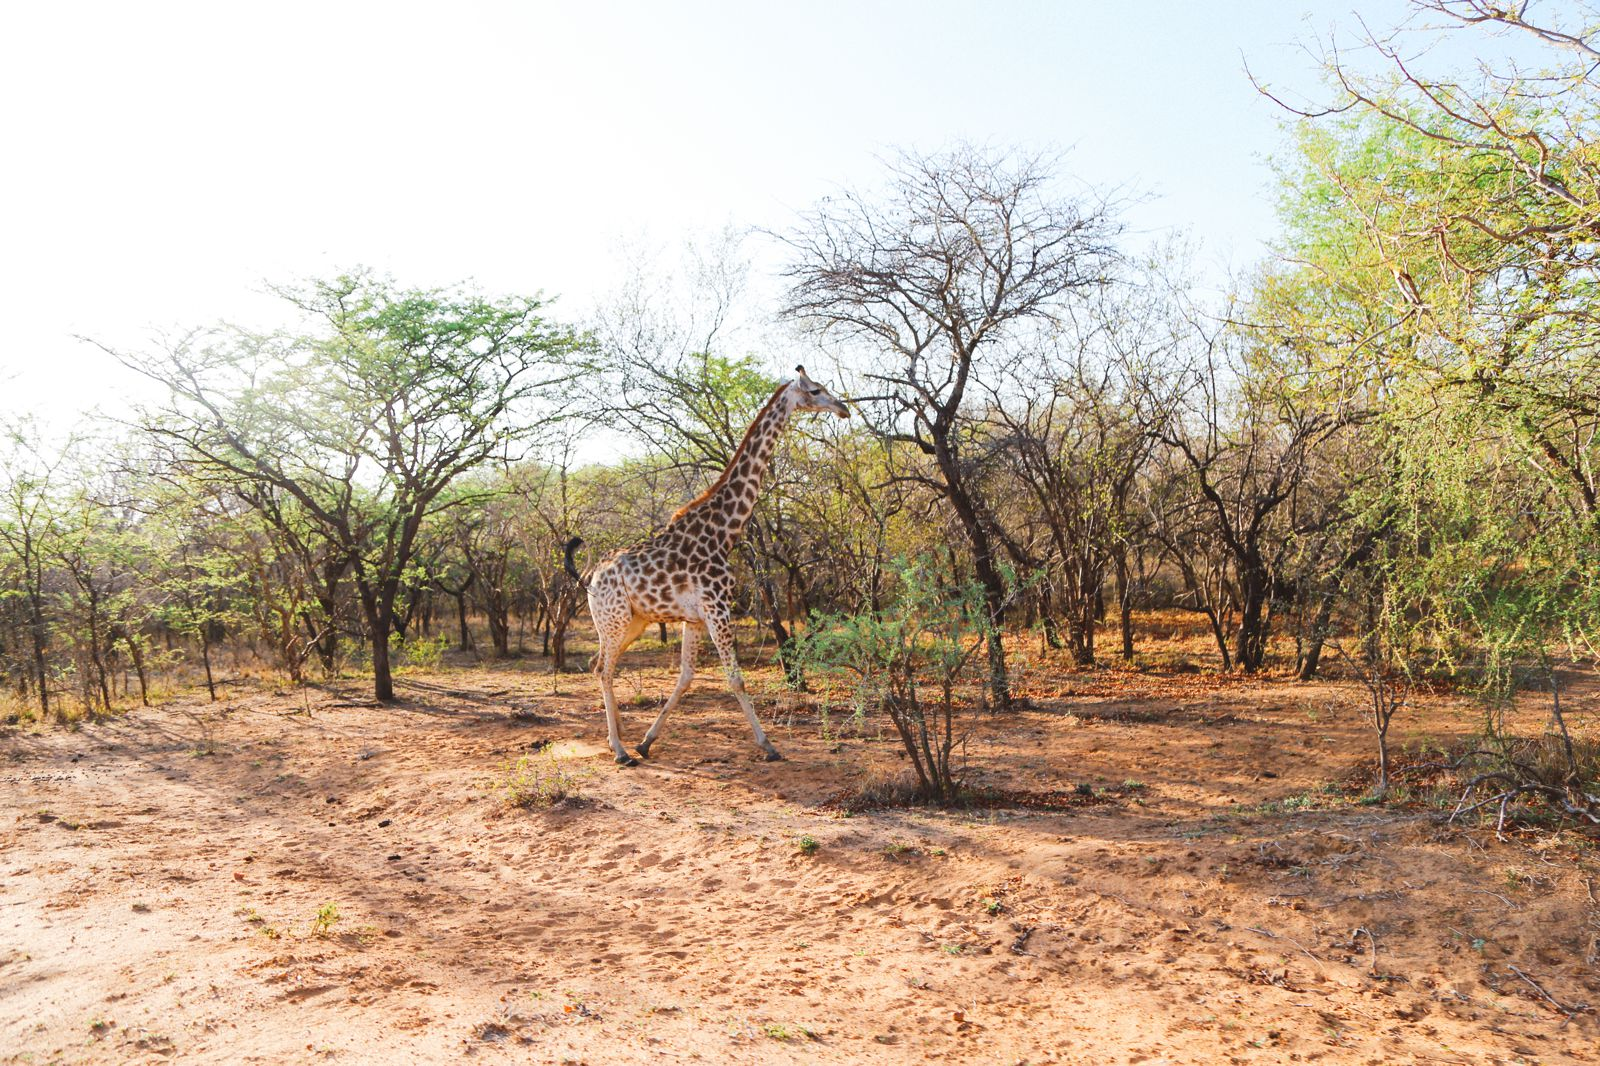 Sunrise Till Sunset - A 24 Hour South African Safari Diary (2)